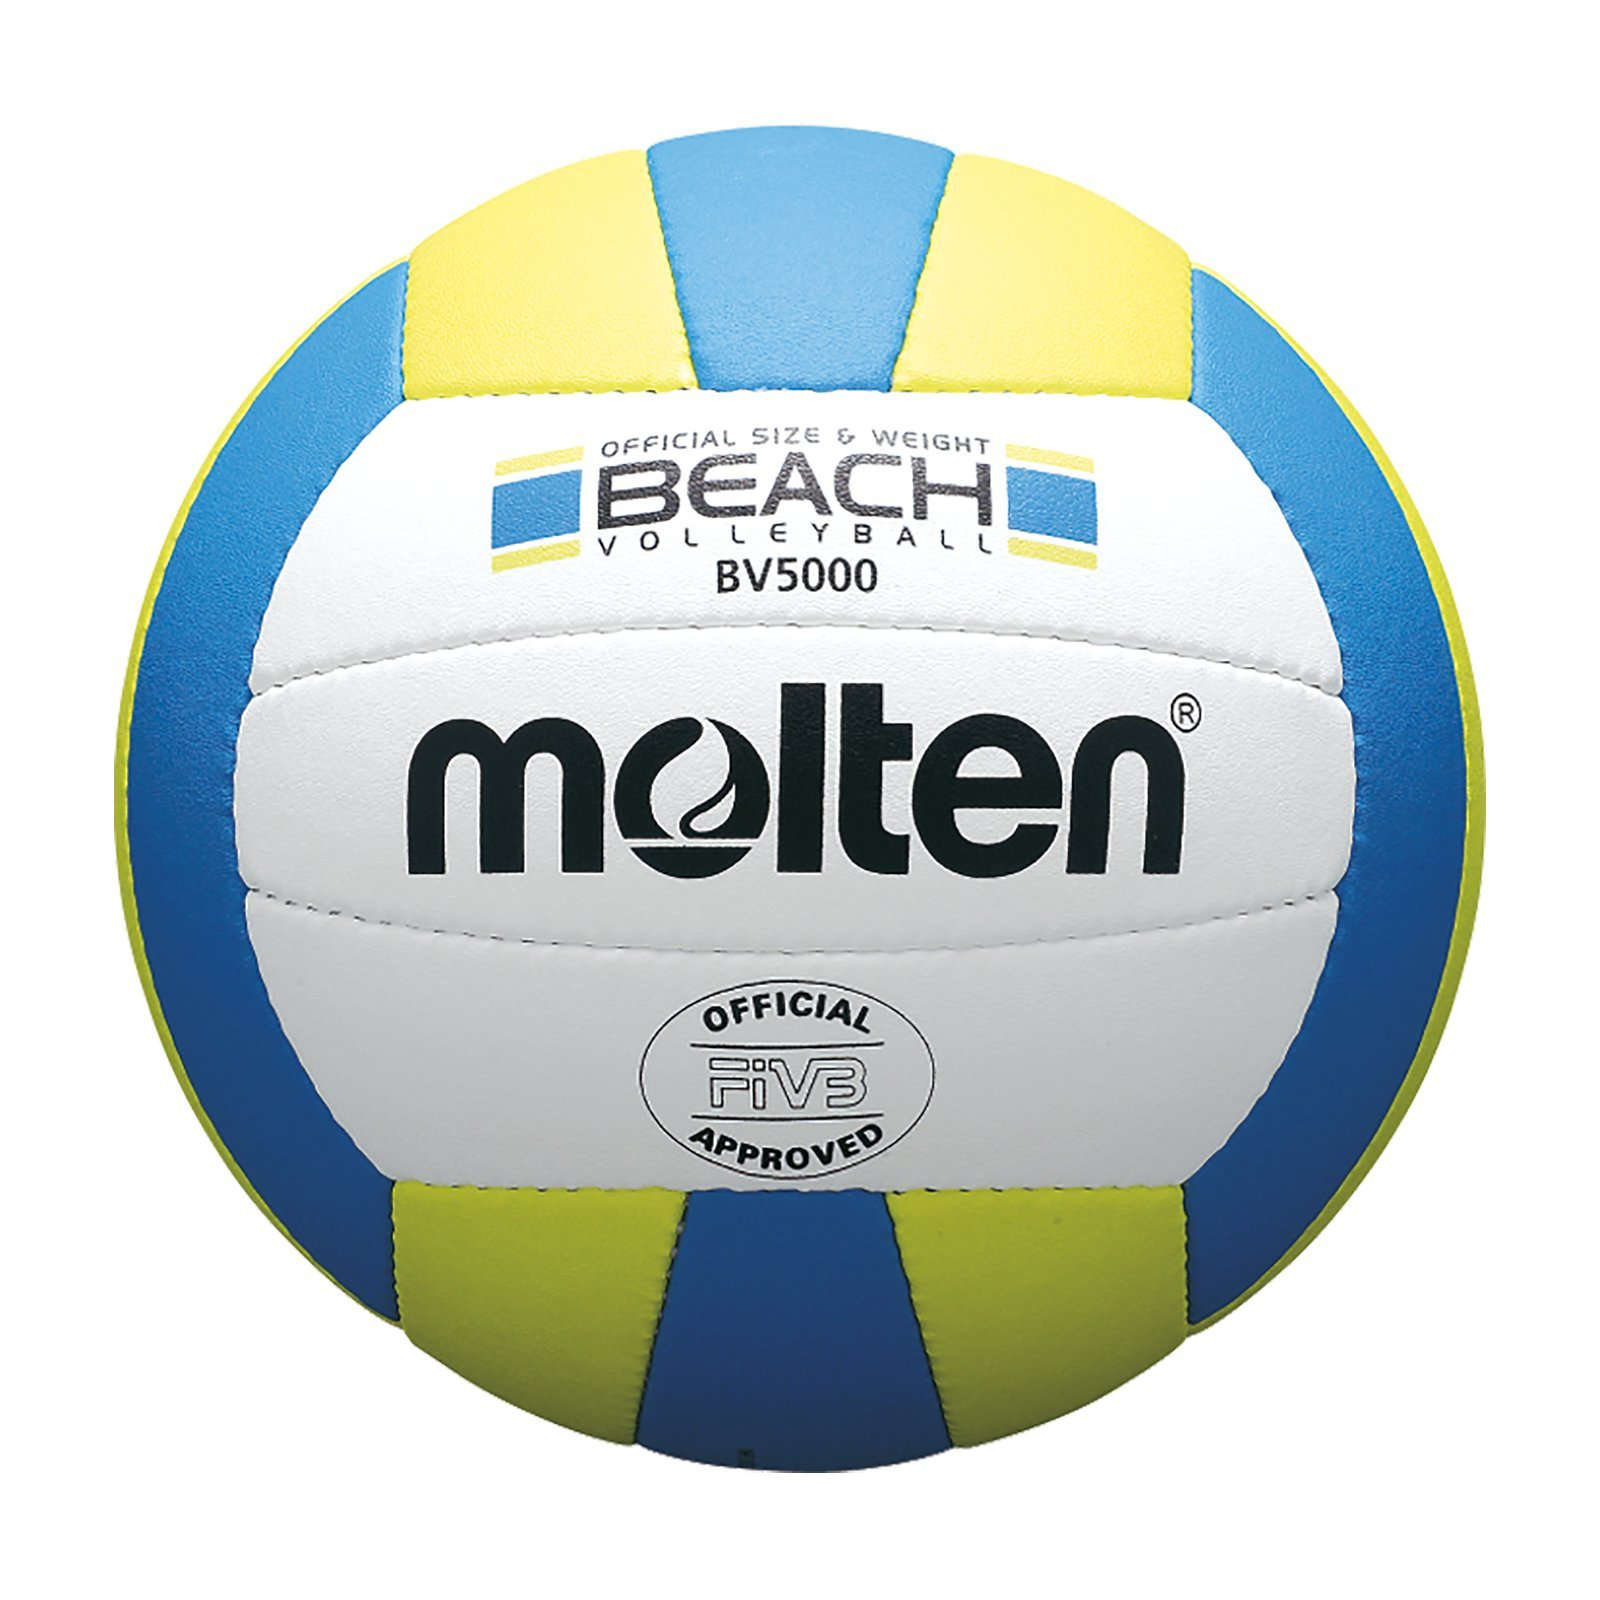 Molten Bv5000 Volleyball Ball Size 5 Buy Online In Cayman Islands Molten Products In Cayman Islands See Prices Reviews And Free Delivery Over Ci 60 Desertcart